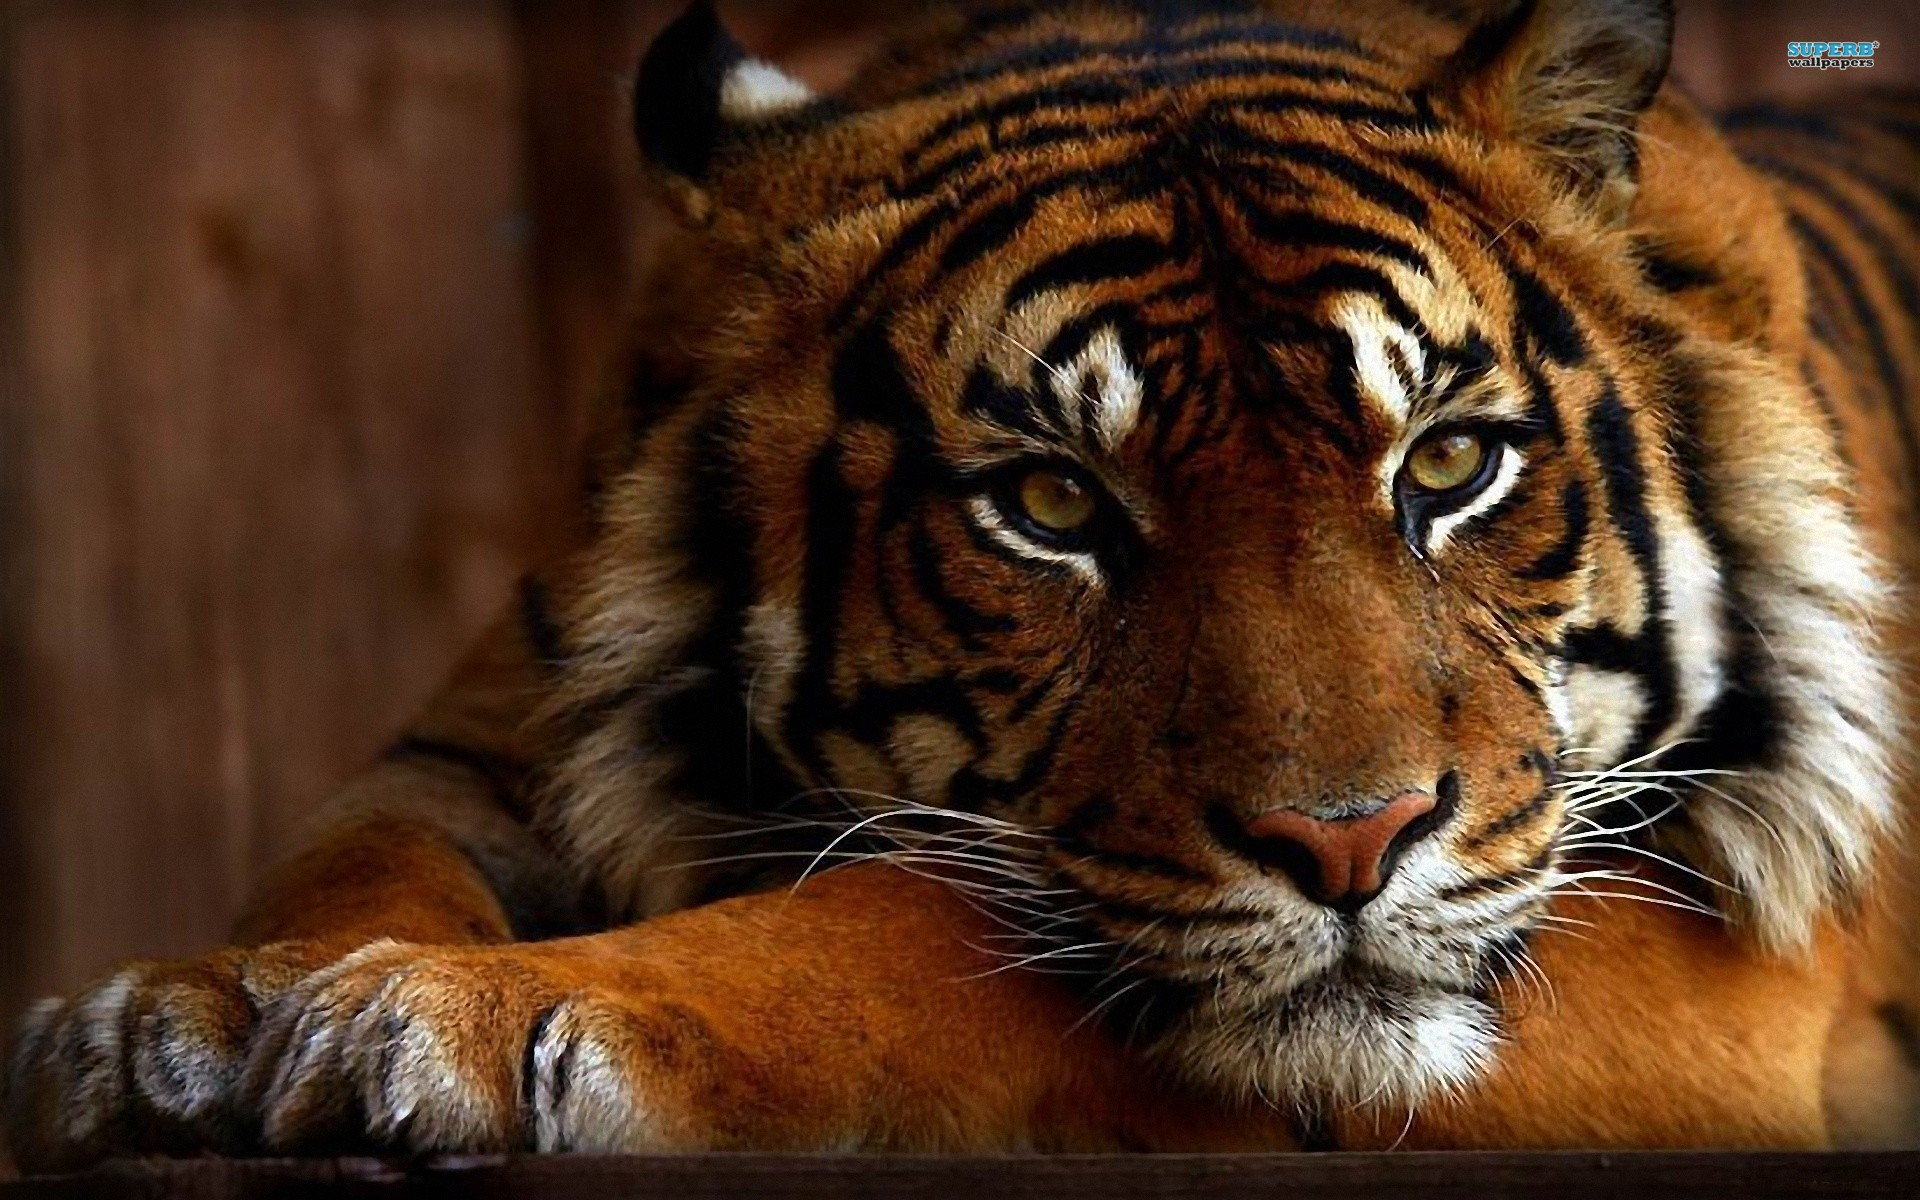 animals and cats you will like this cool and awesome tiger wallpaper 1920x1200